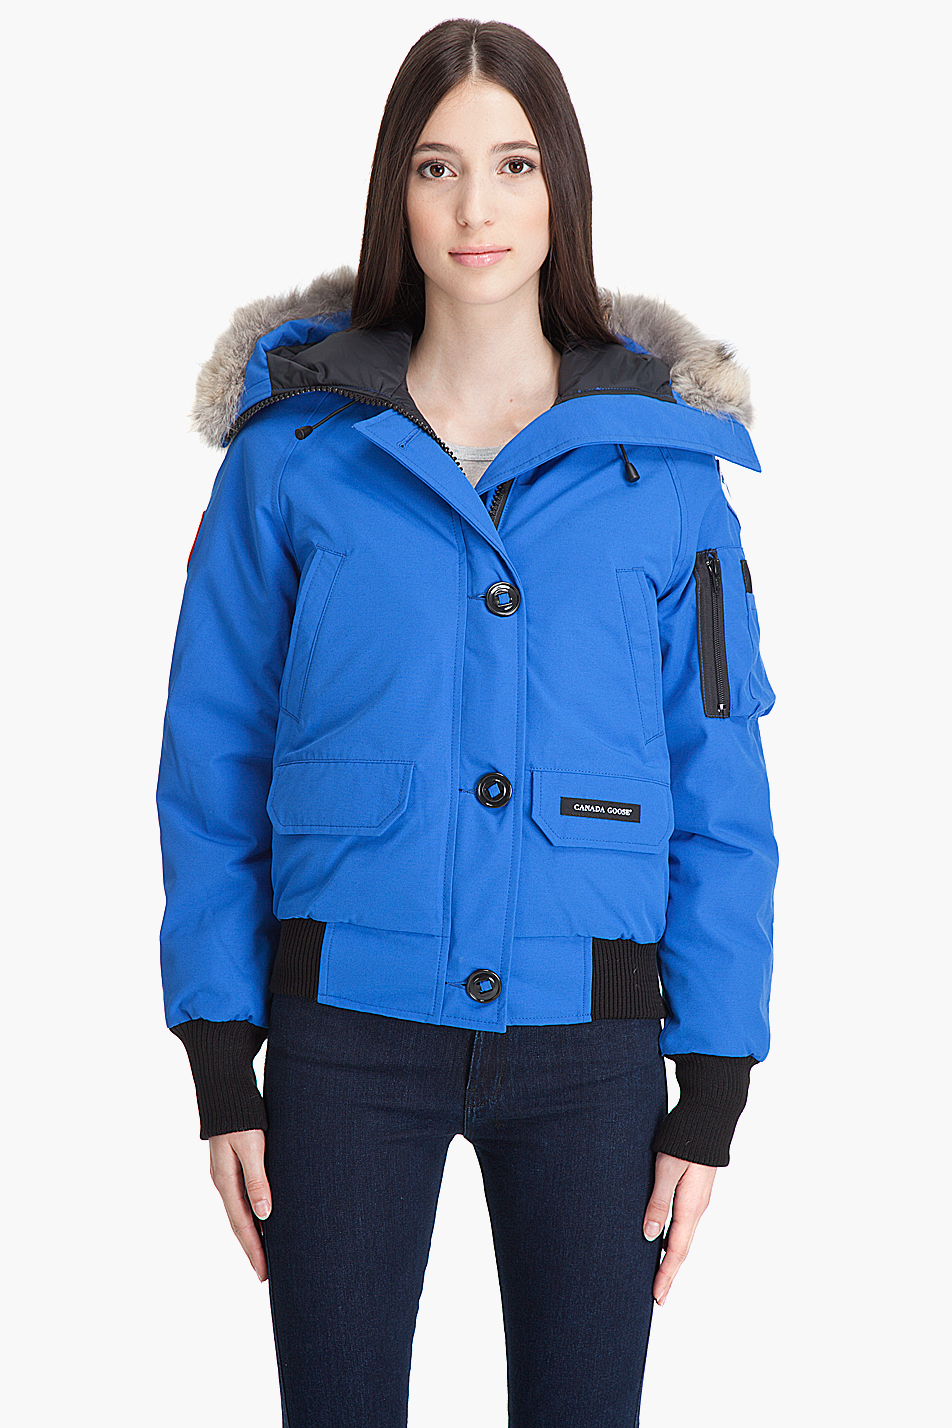 Canada Goose Pbi Chilliwack Jacket In Blue Lyst